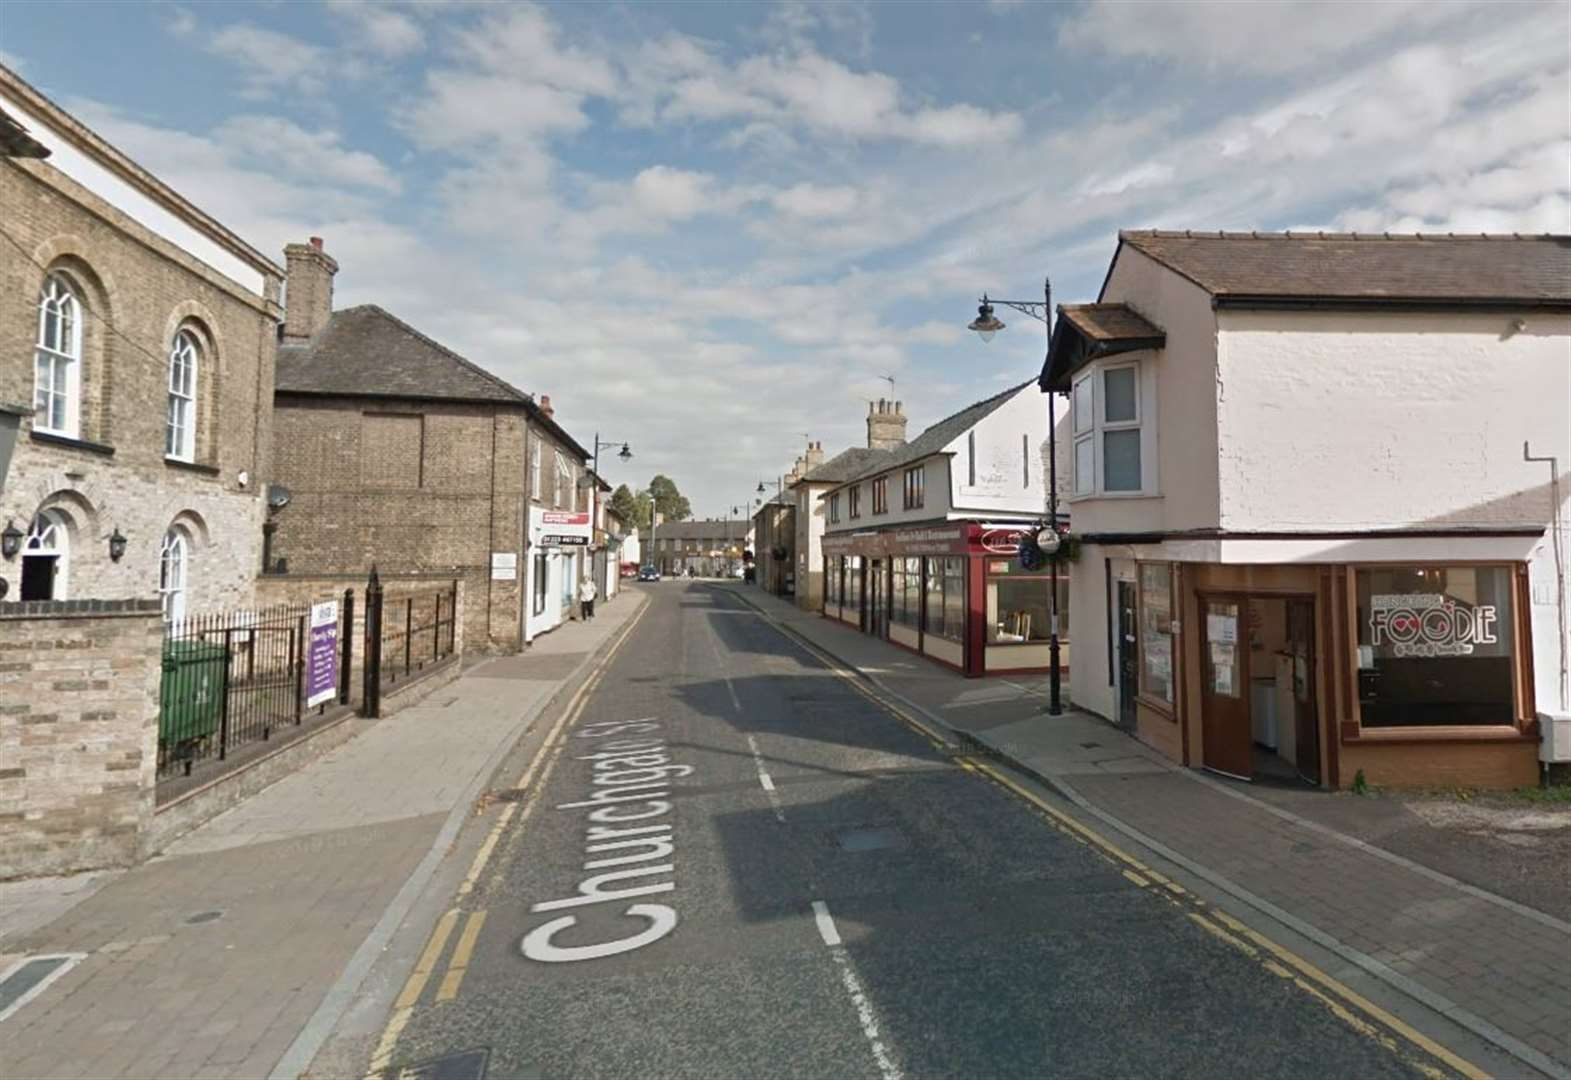 Man dies in Soham town centre after reports of 'medical emergency'